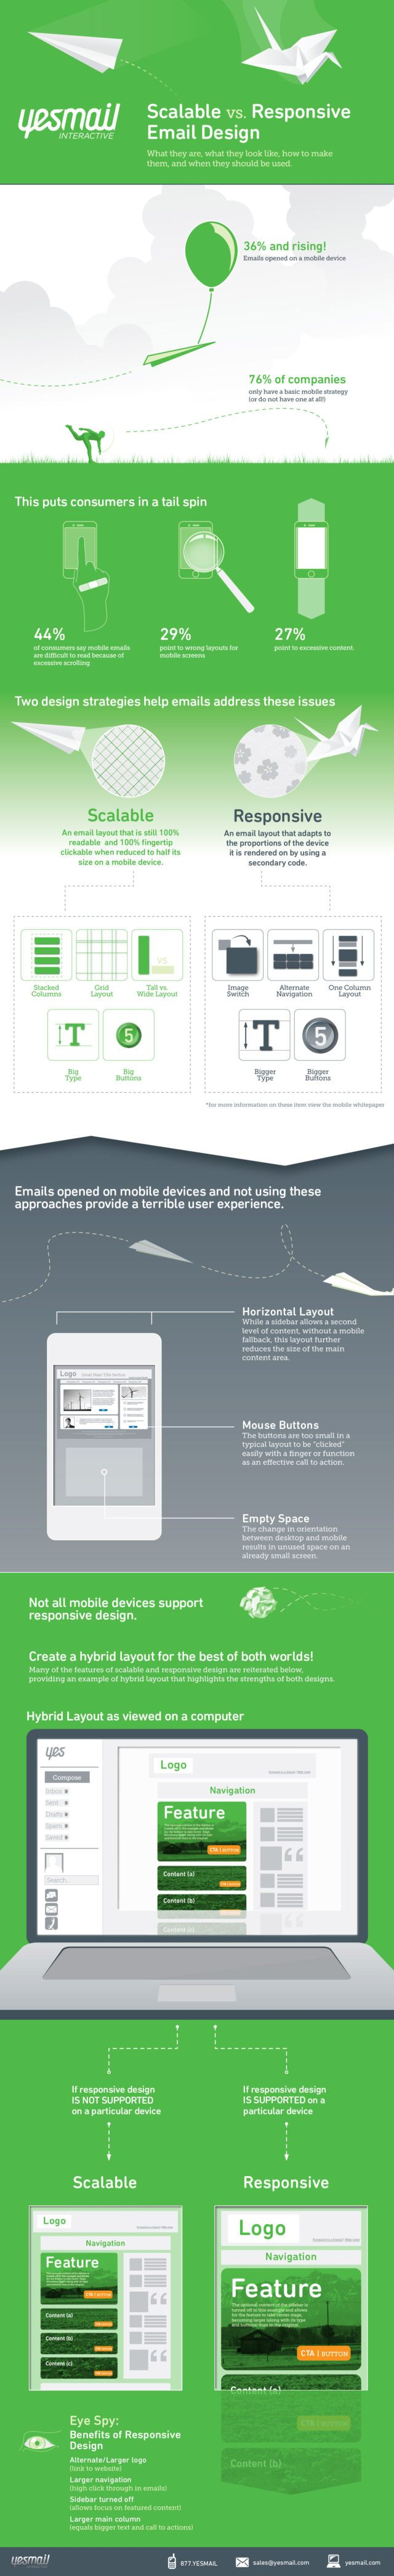 Scalable vs Responsive Email Design